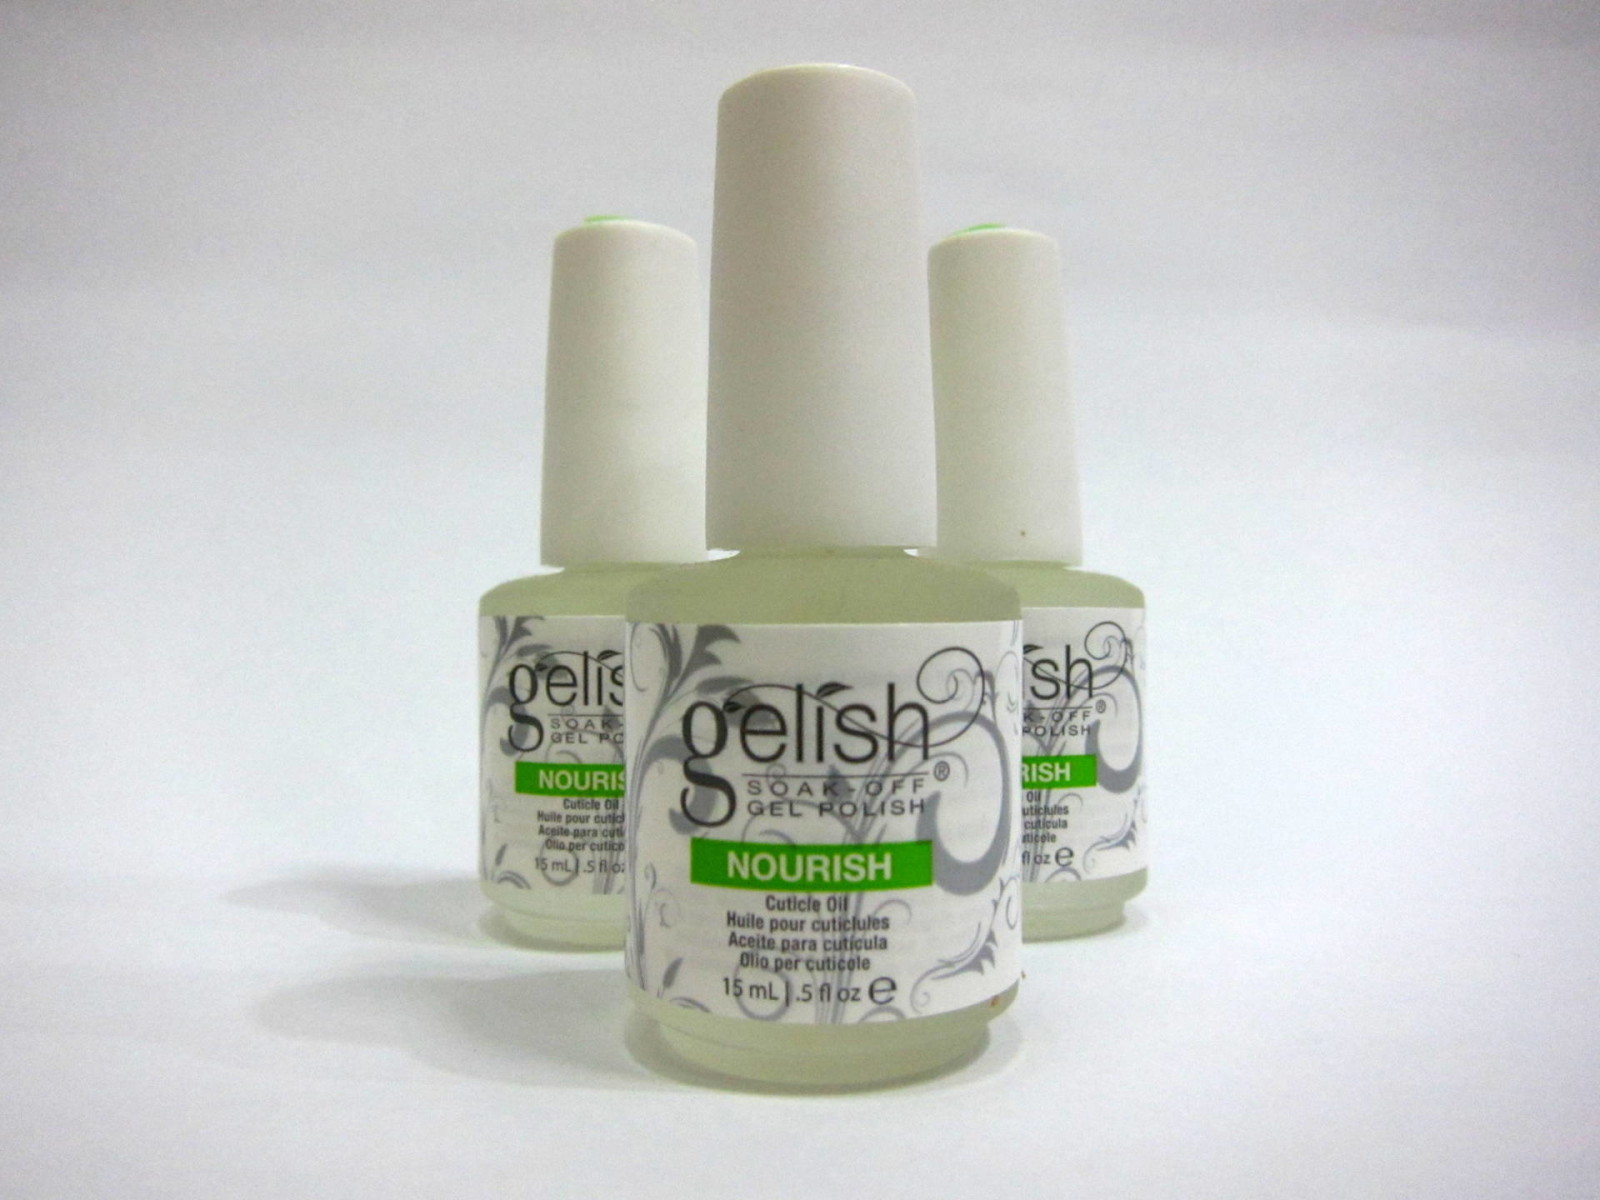 Gelish nourish cuticle oil – a winter warrior battling dry skin